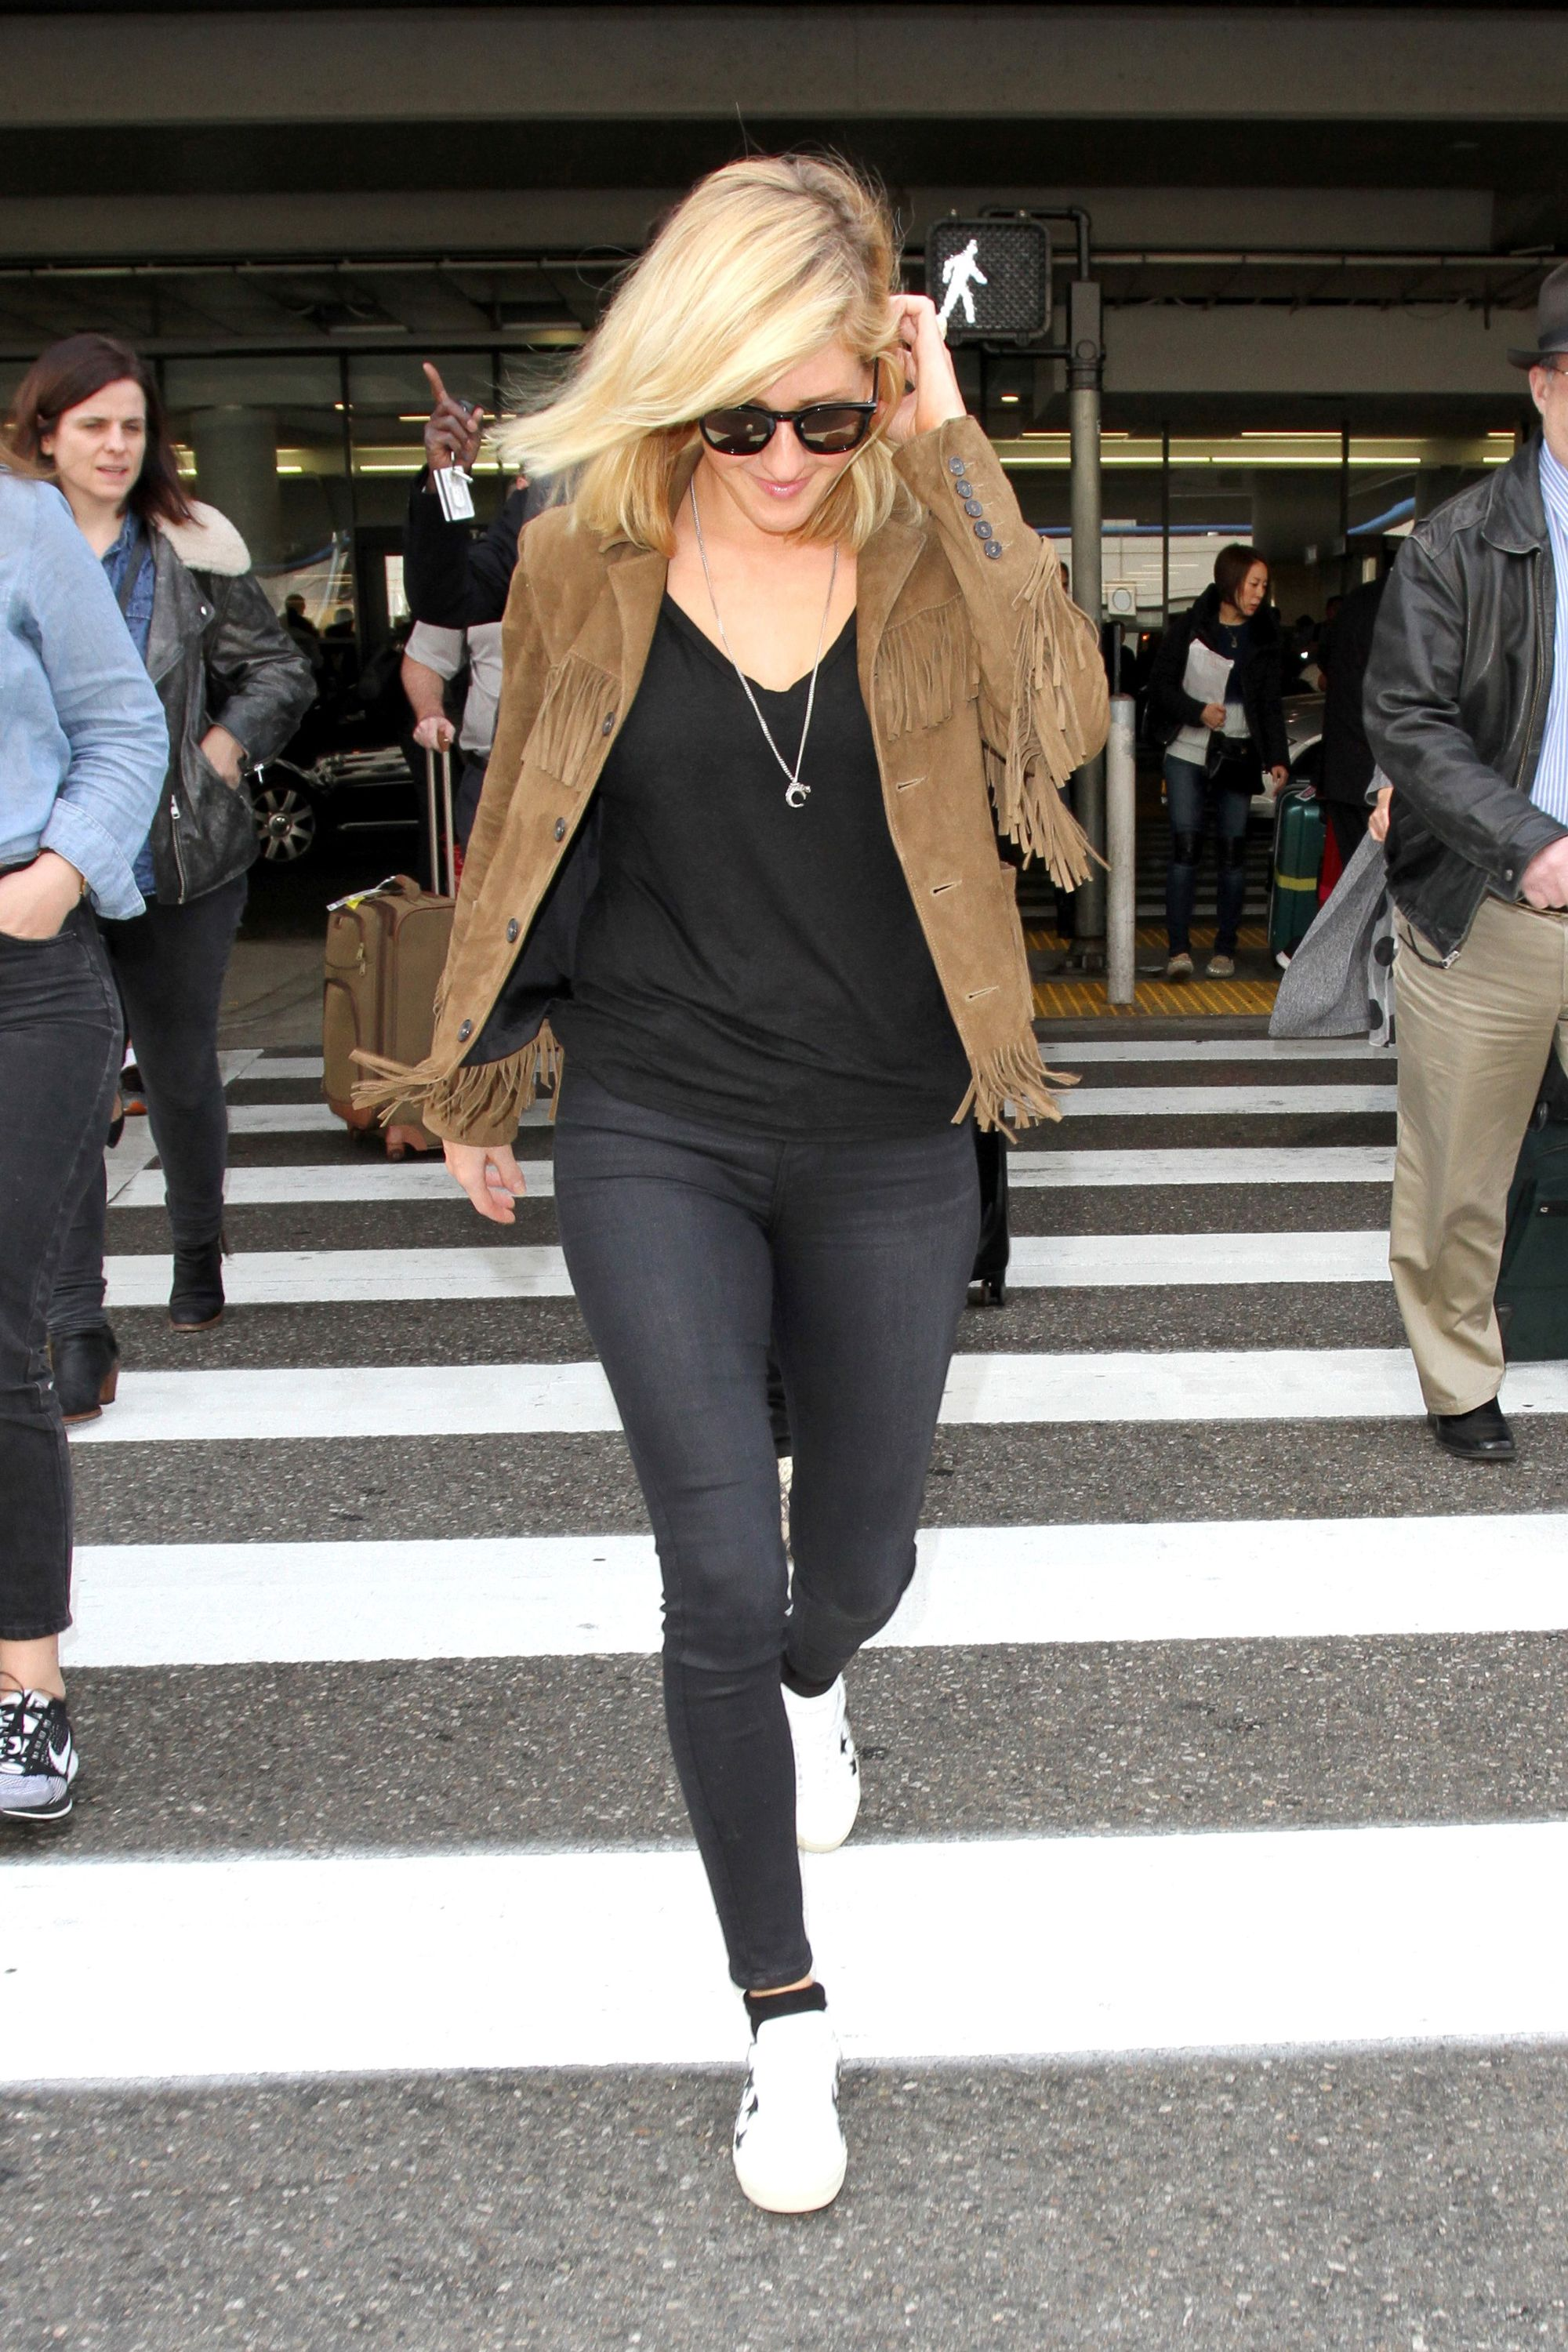 Ellie Goulding Tops Off Her Airport Look With Fringe